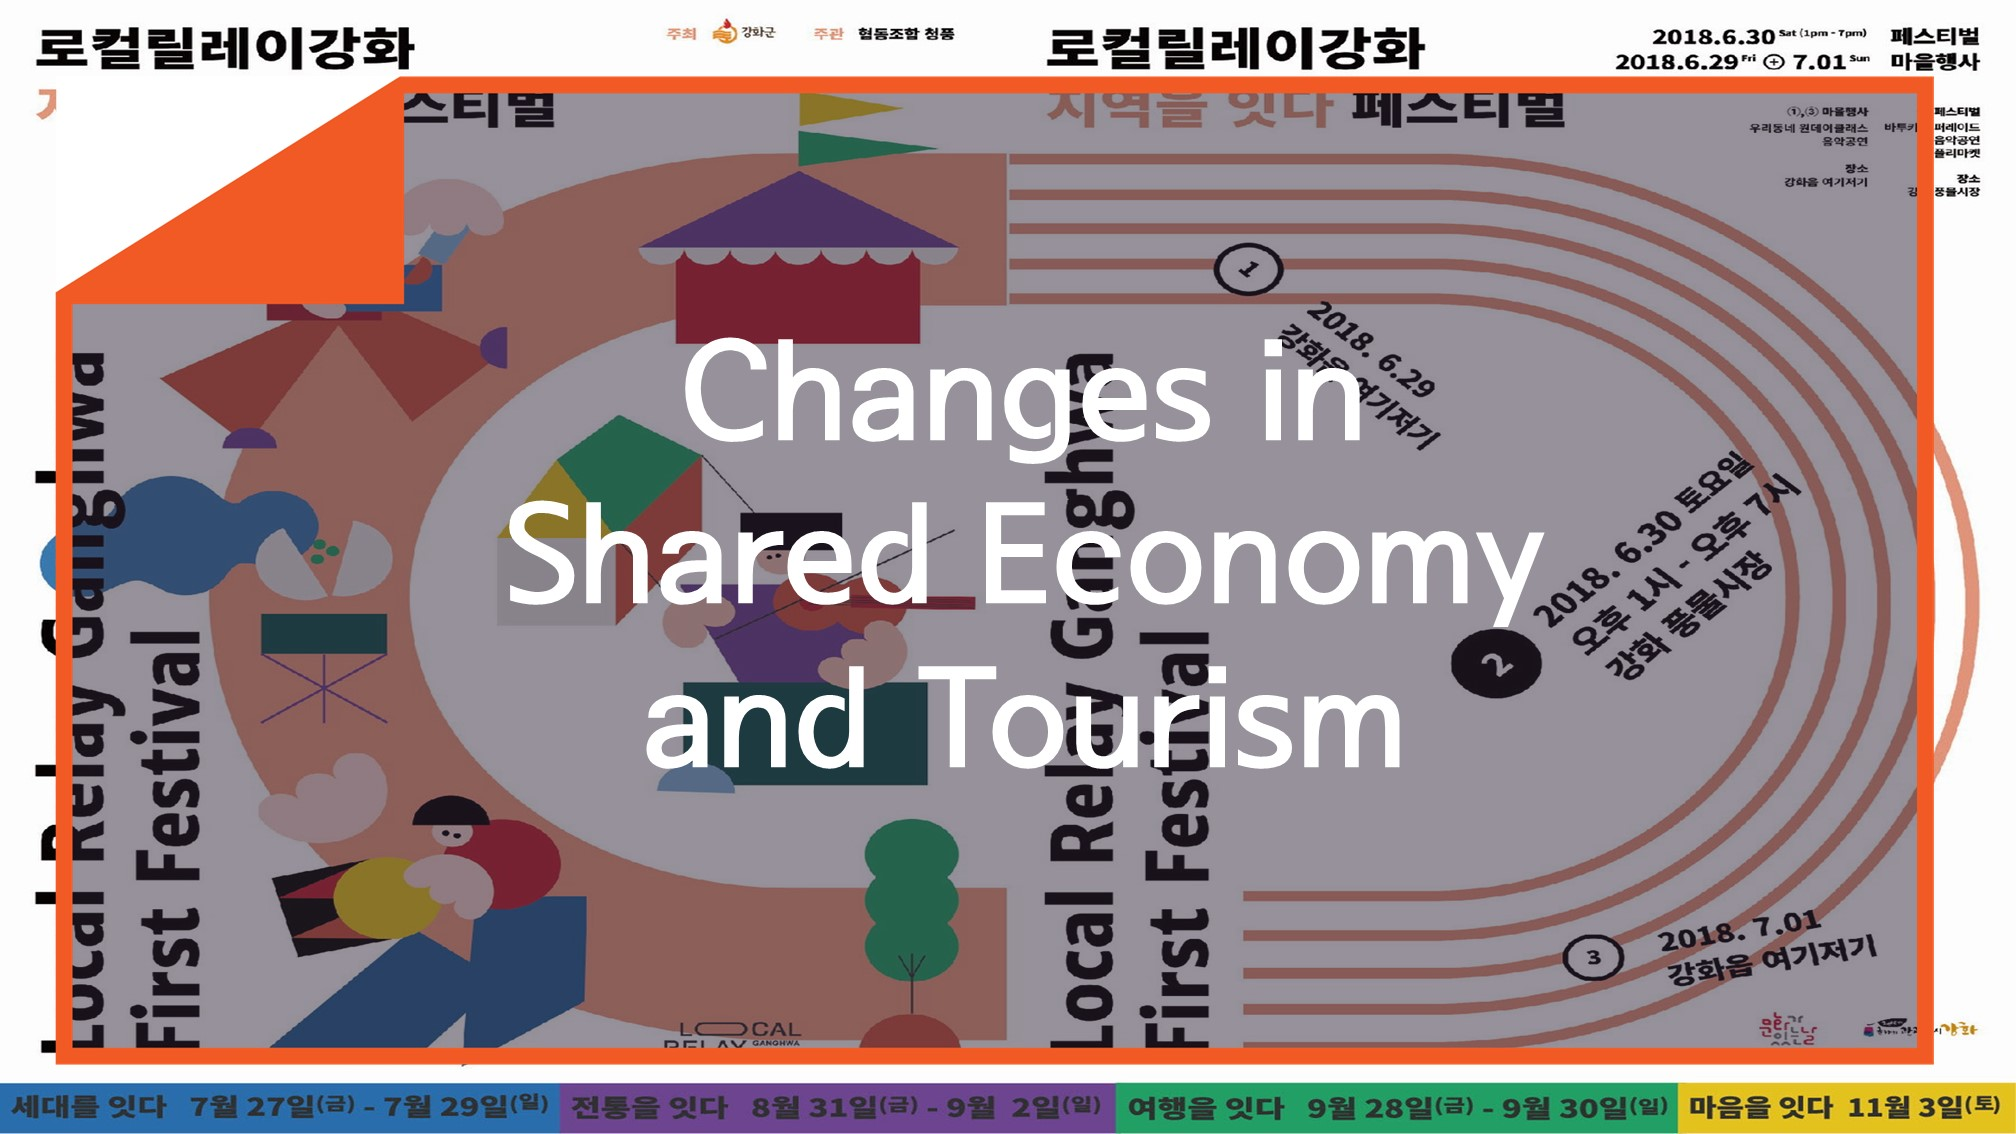 [Resources] Changes in Shared Economy and Tourism